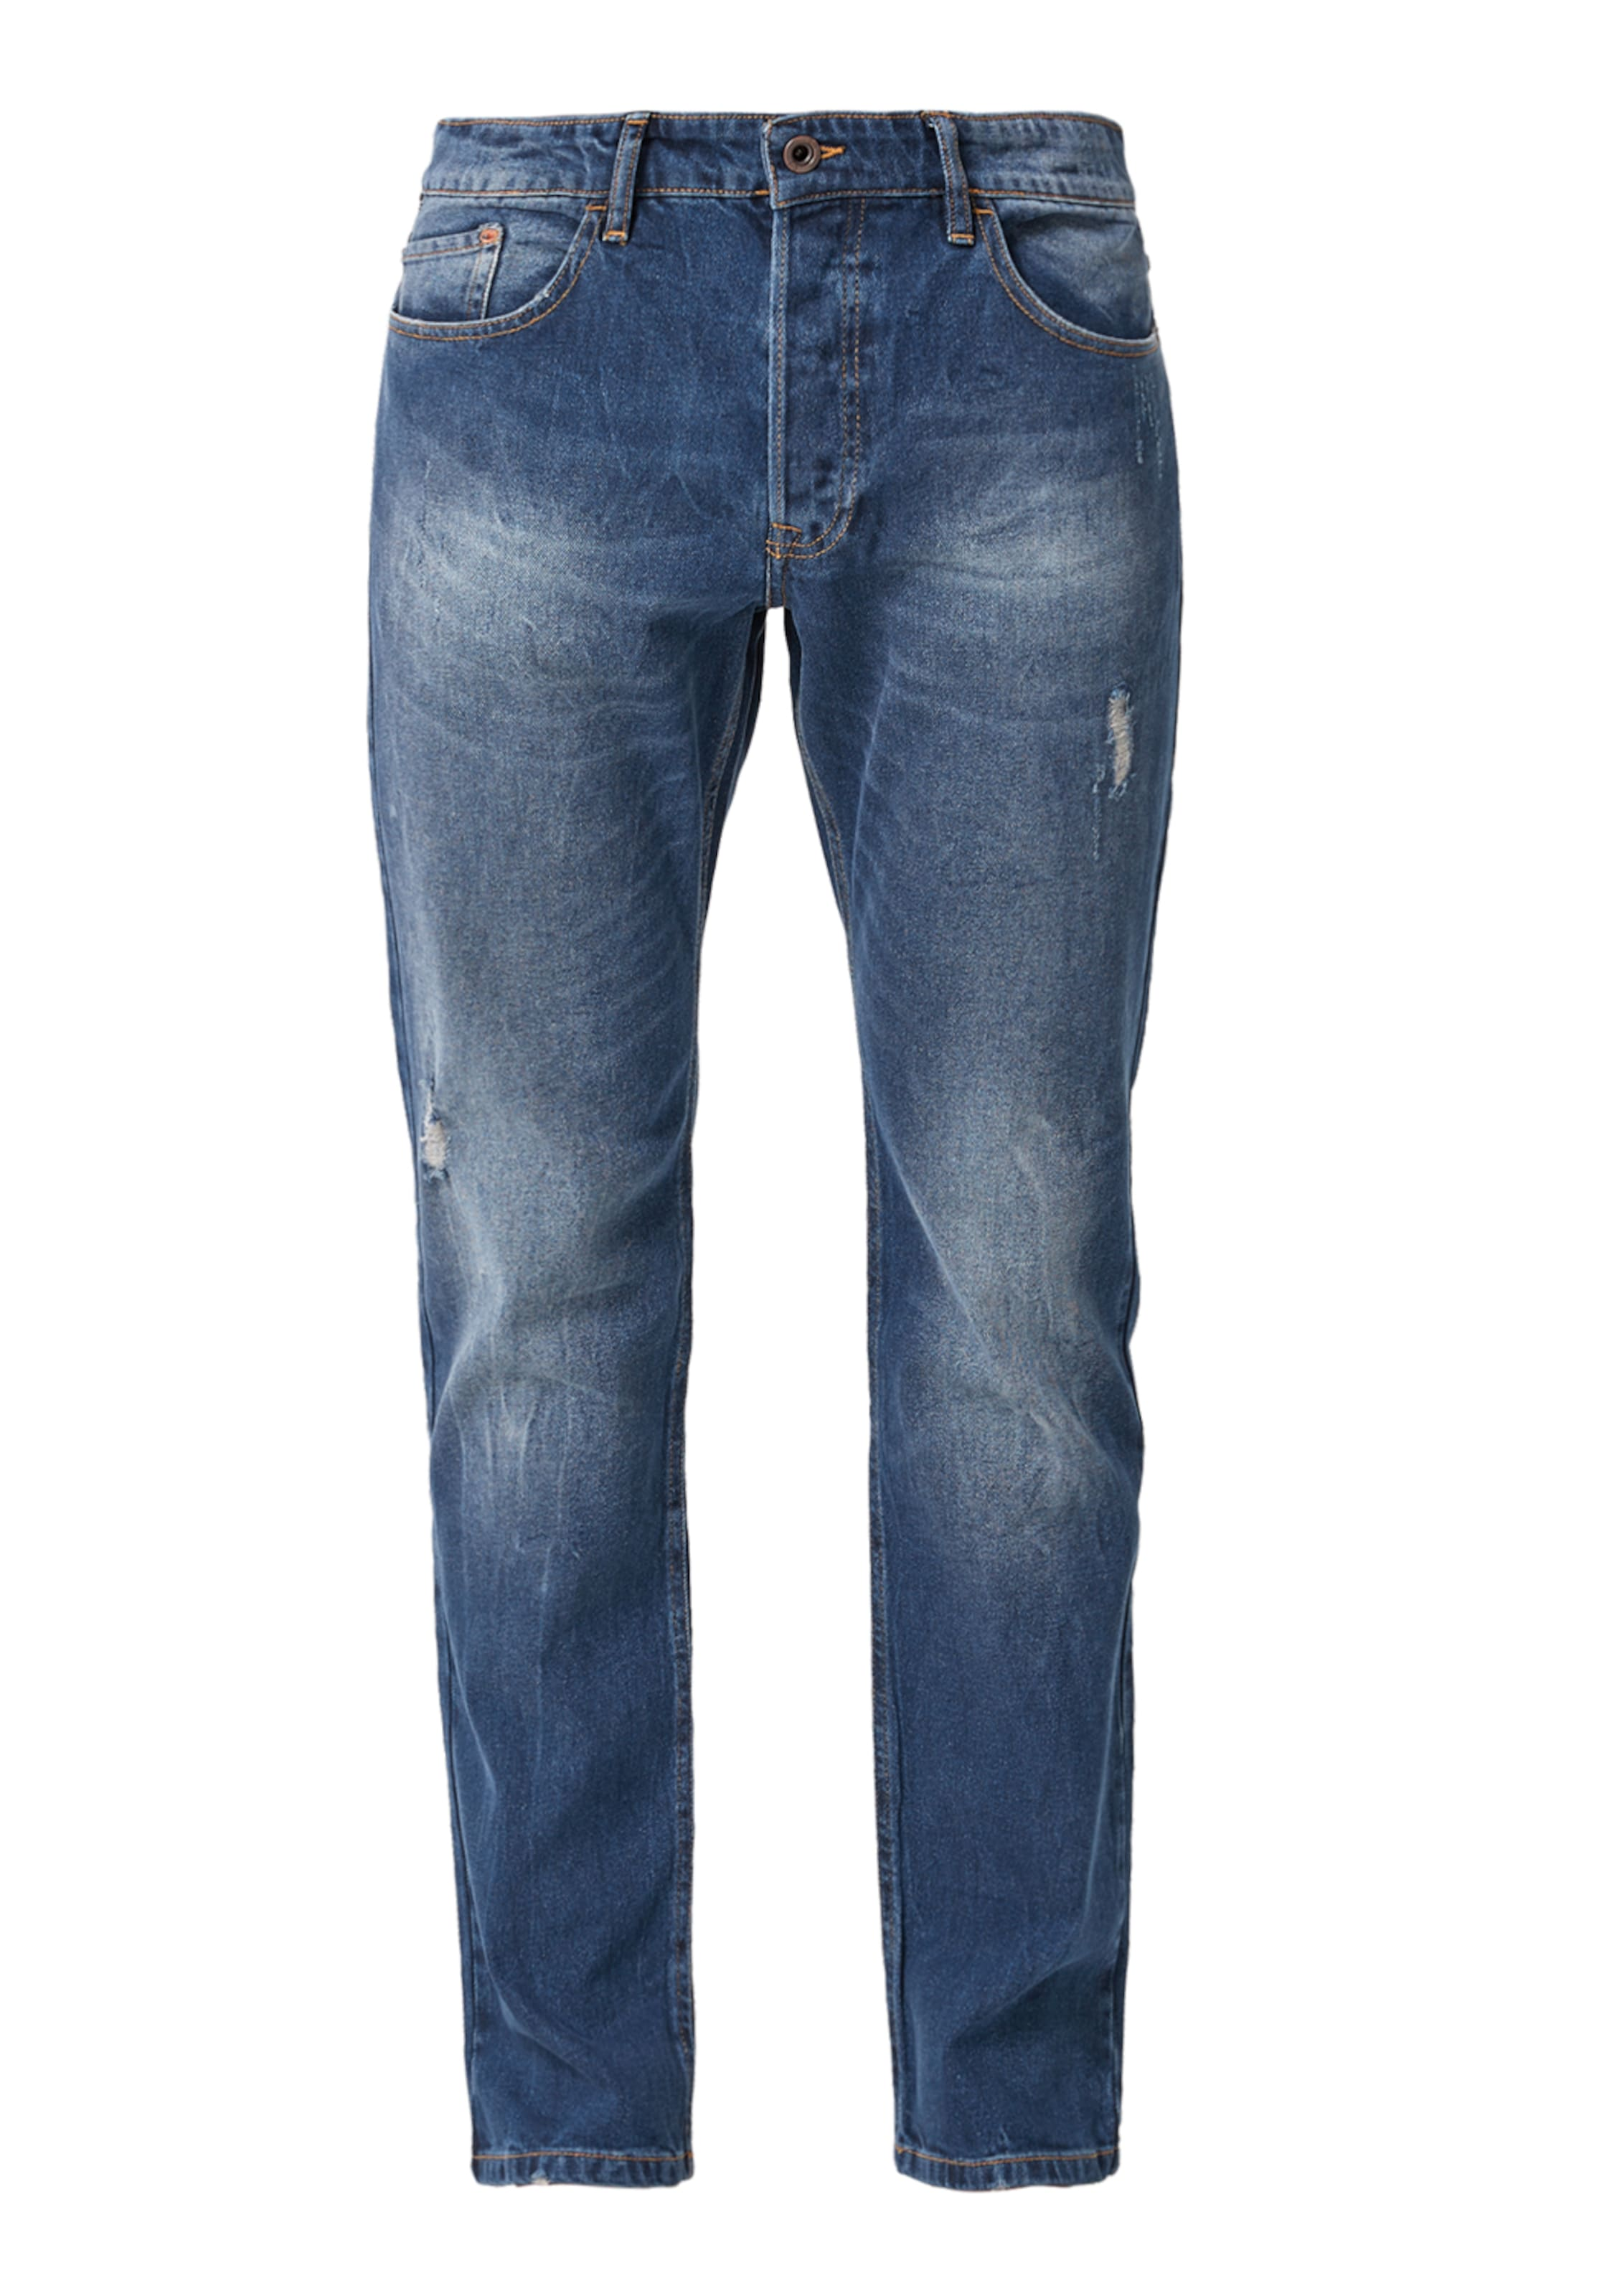 Jeans In Designed 'pete' Blue s By Denim Q T1JclFK